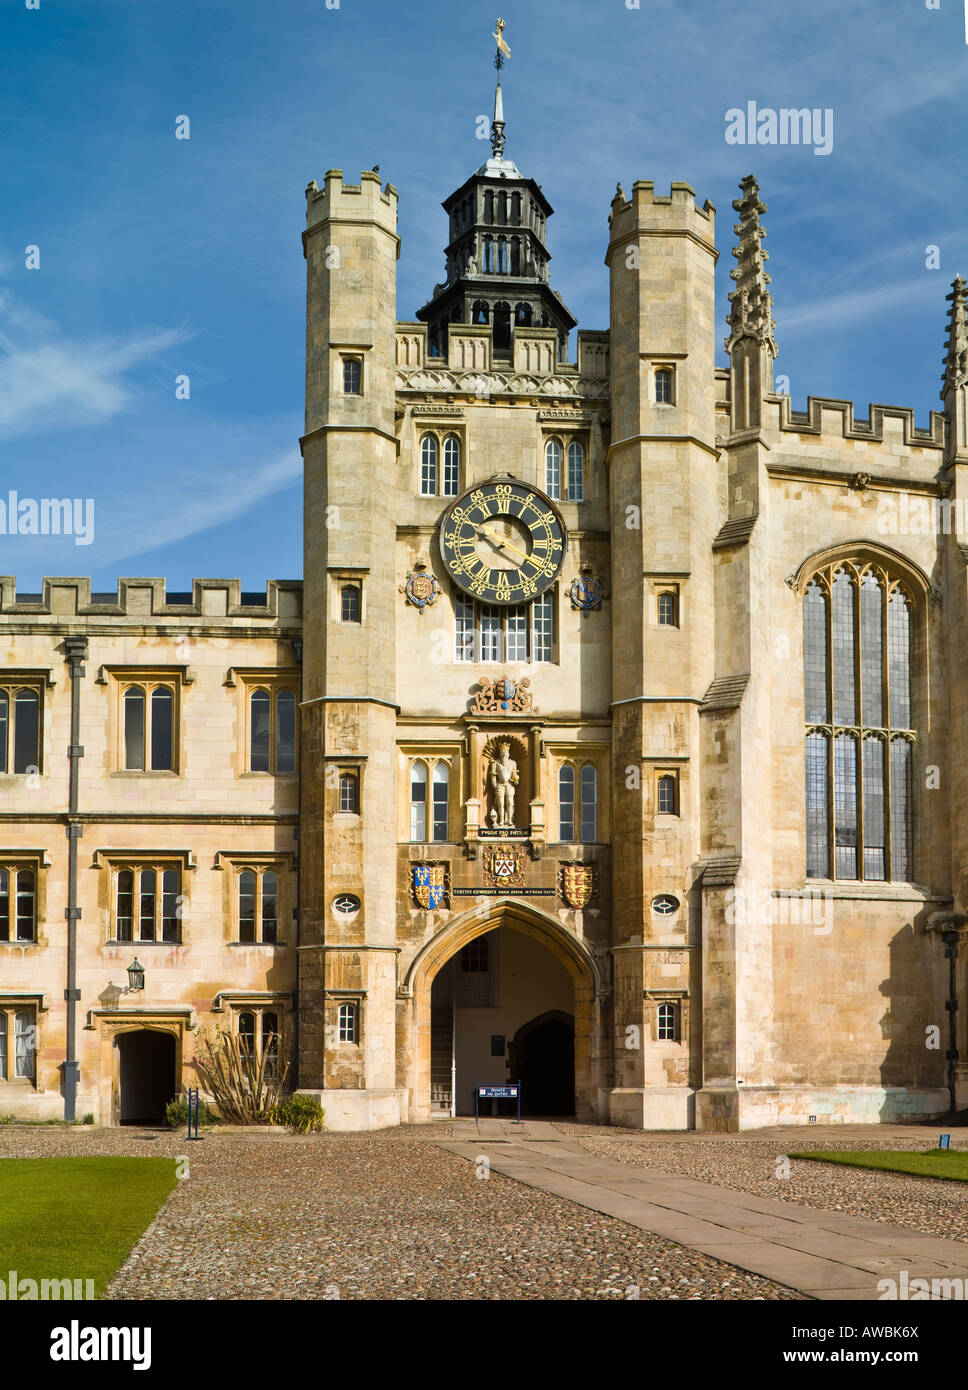 The  Clock Tower, or King's Gate, the Great Court, Trinity College, Cambridge, England - Stock Image